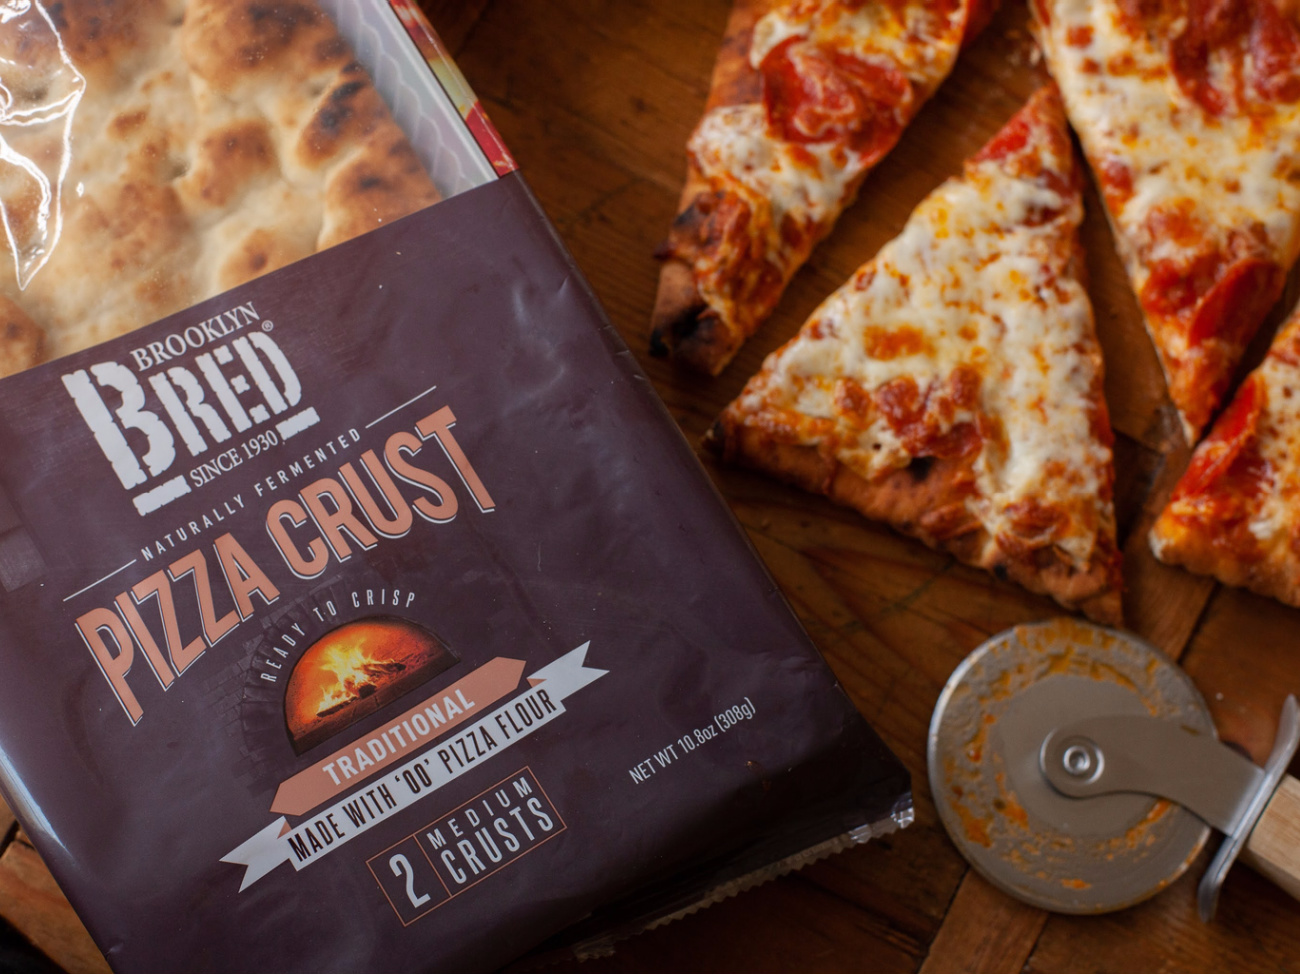 Brooklyn Bred Traditional Pizza Crust Just $2 At Publix on I Heart Publix 2